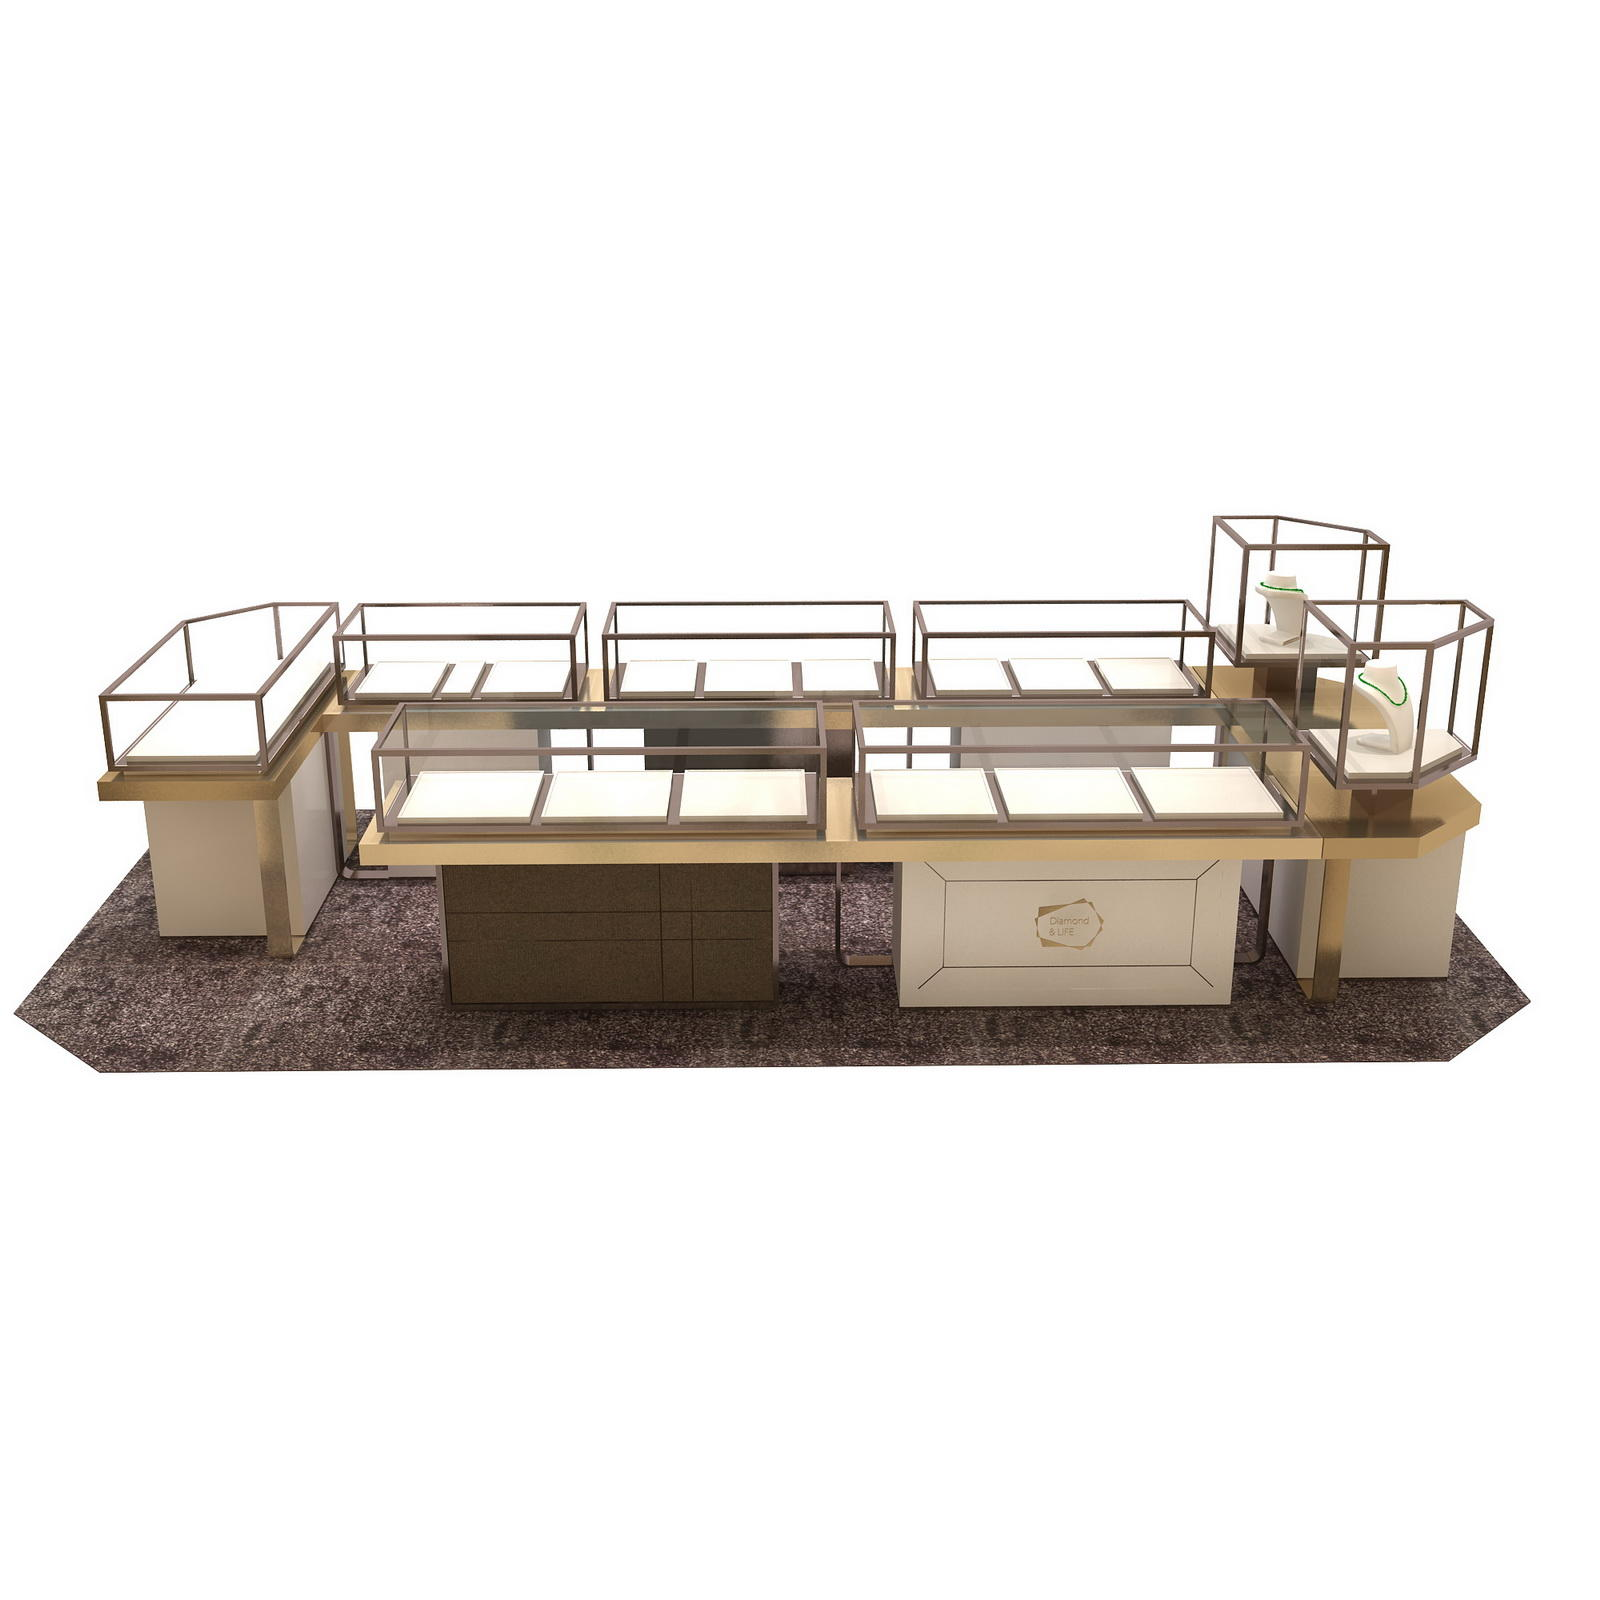 retail jewellery display cabinets commercial for store OUYEE-3